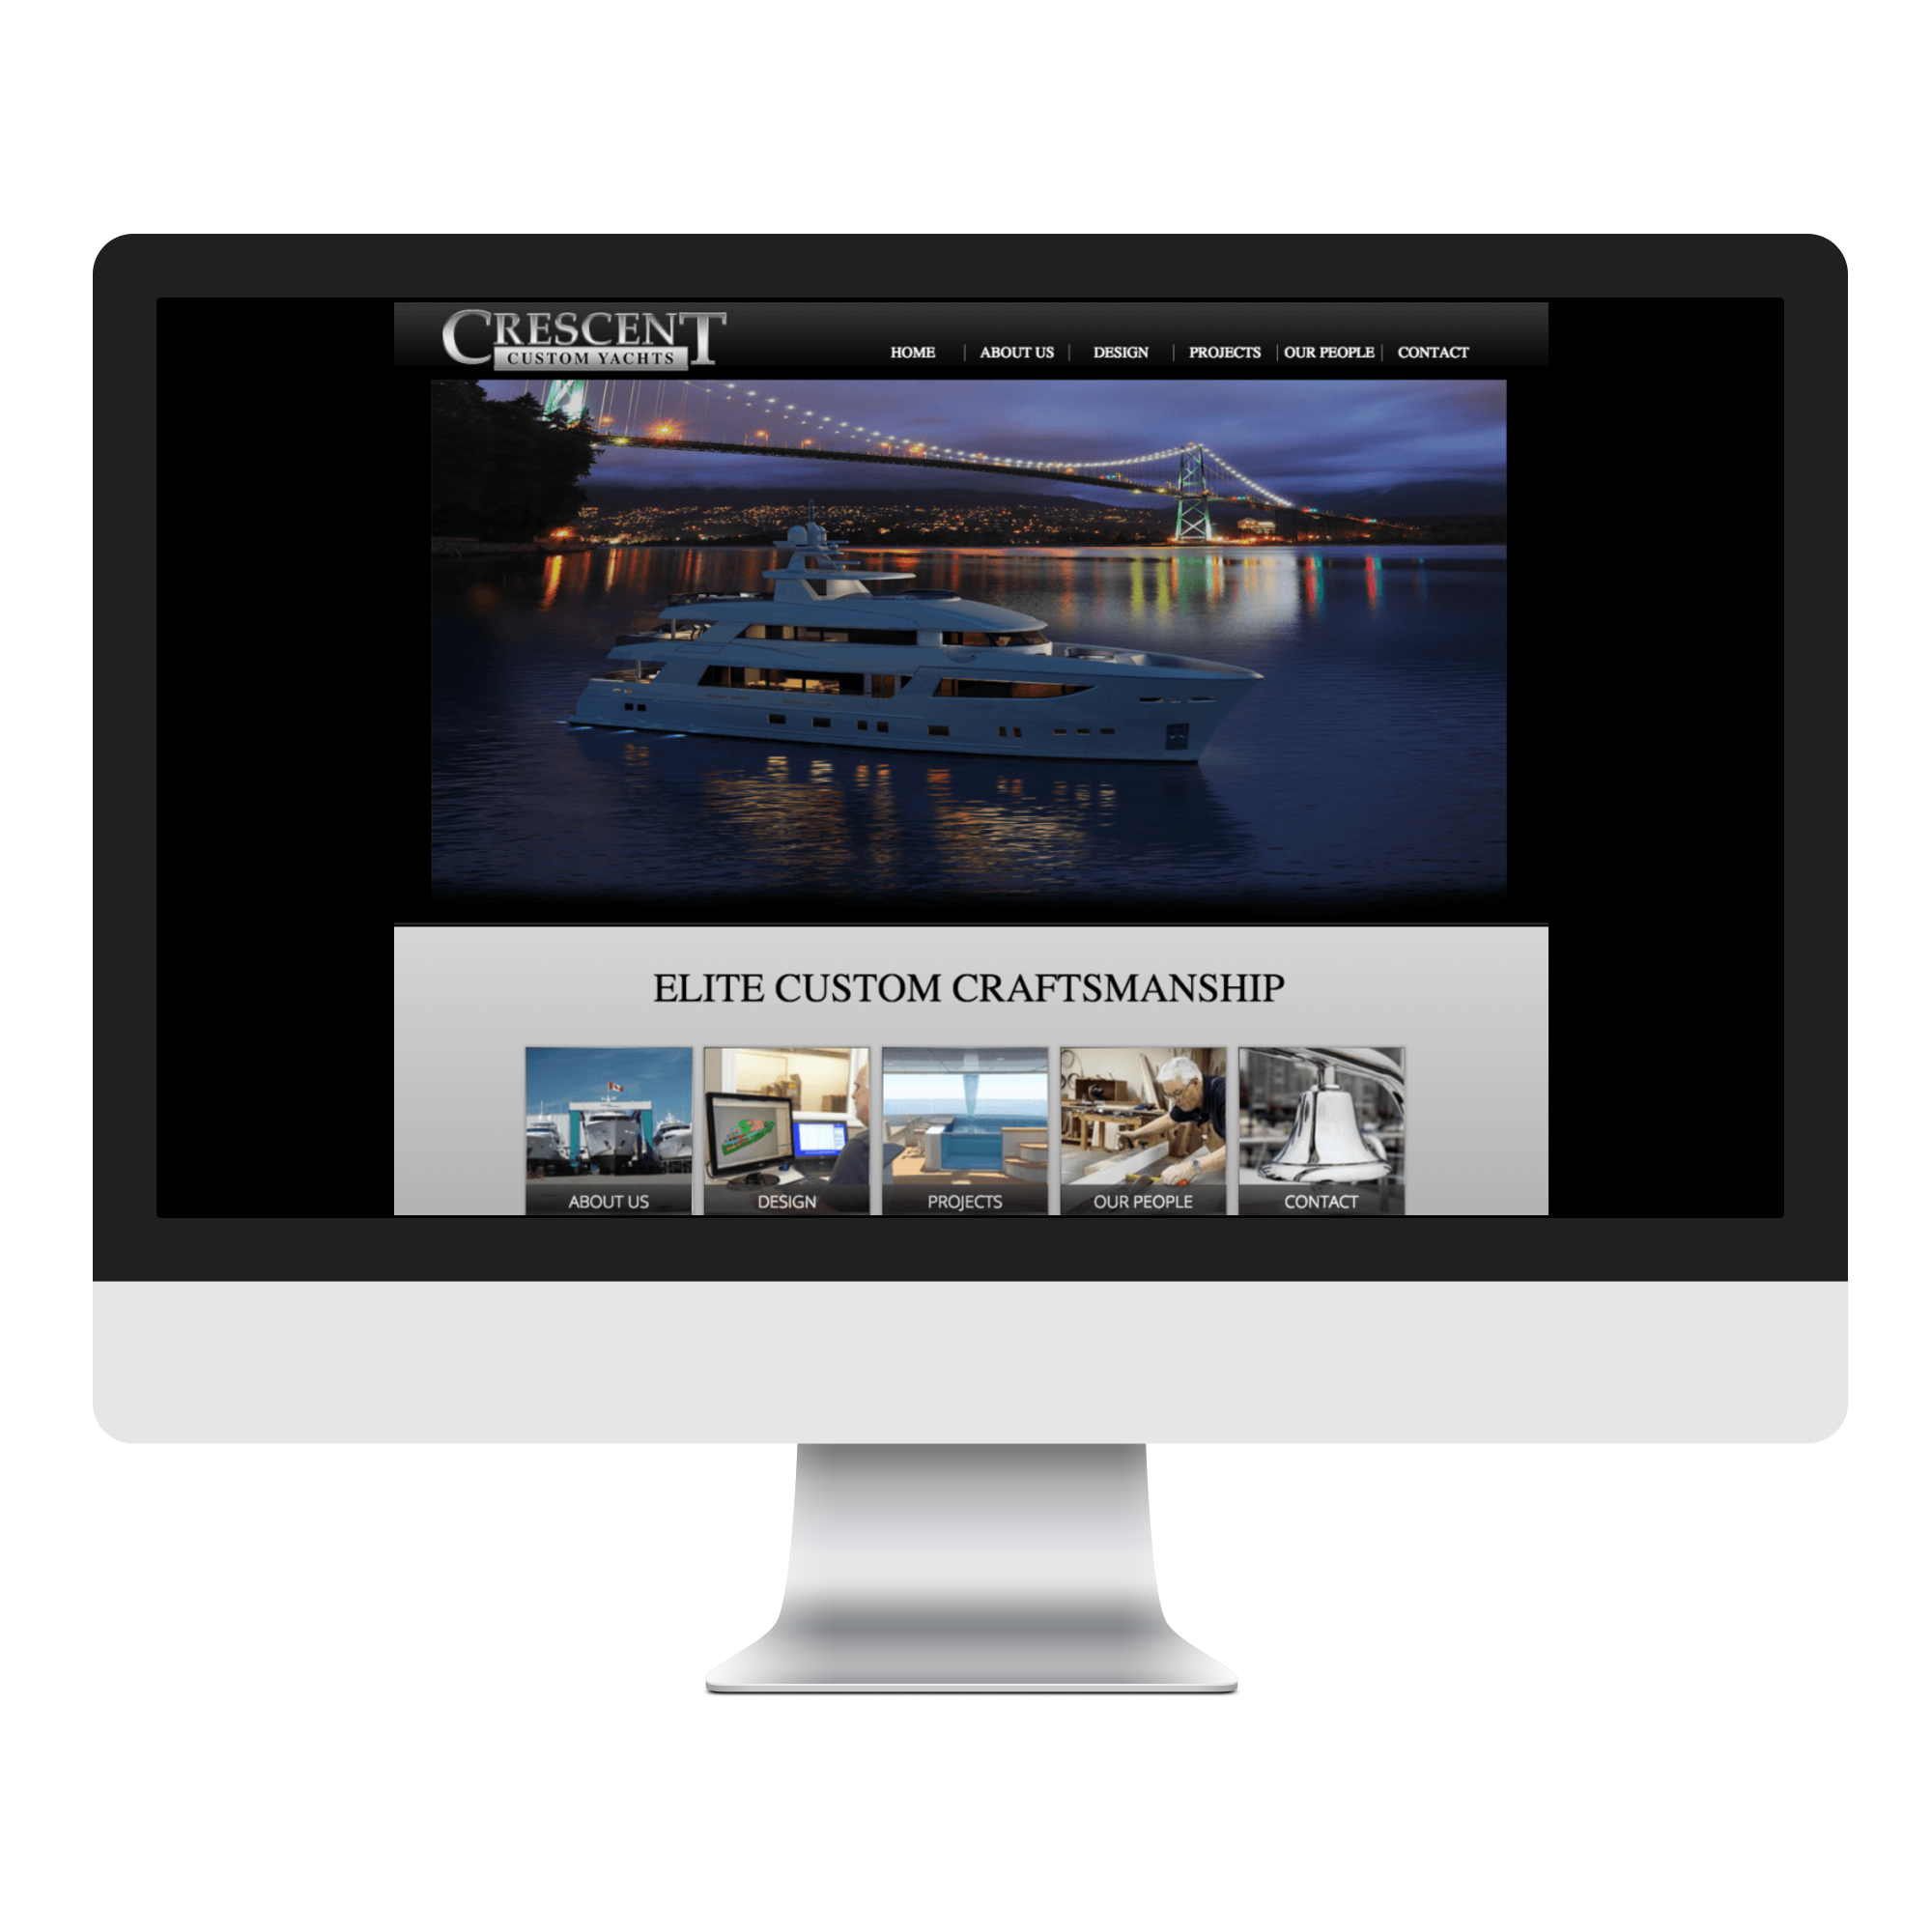 Crescent-Yacht-Homepage-1024x810_imac2013_front